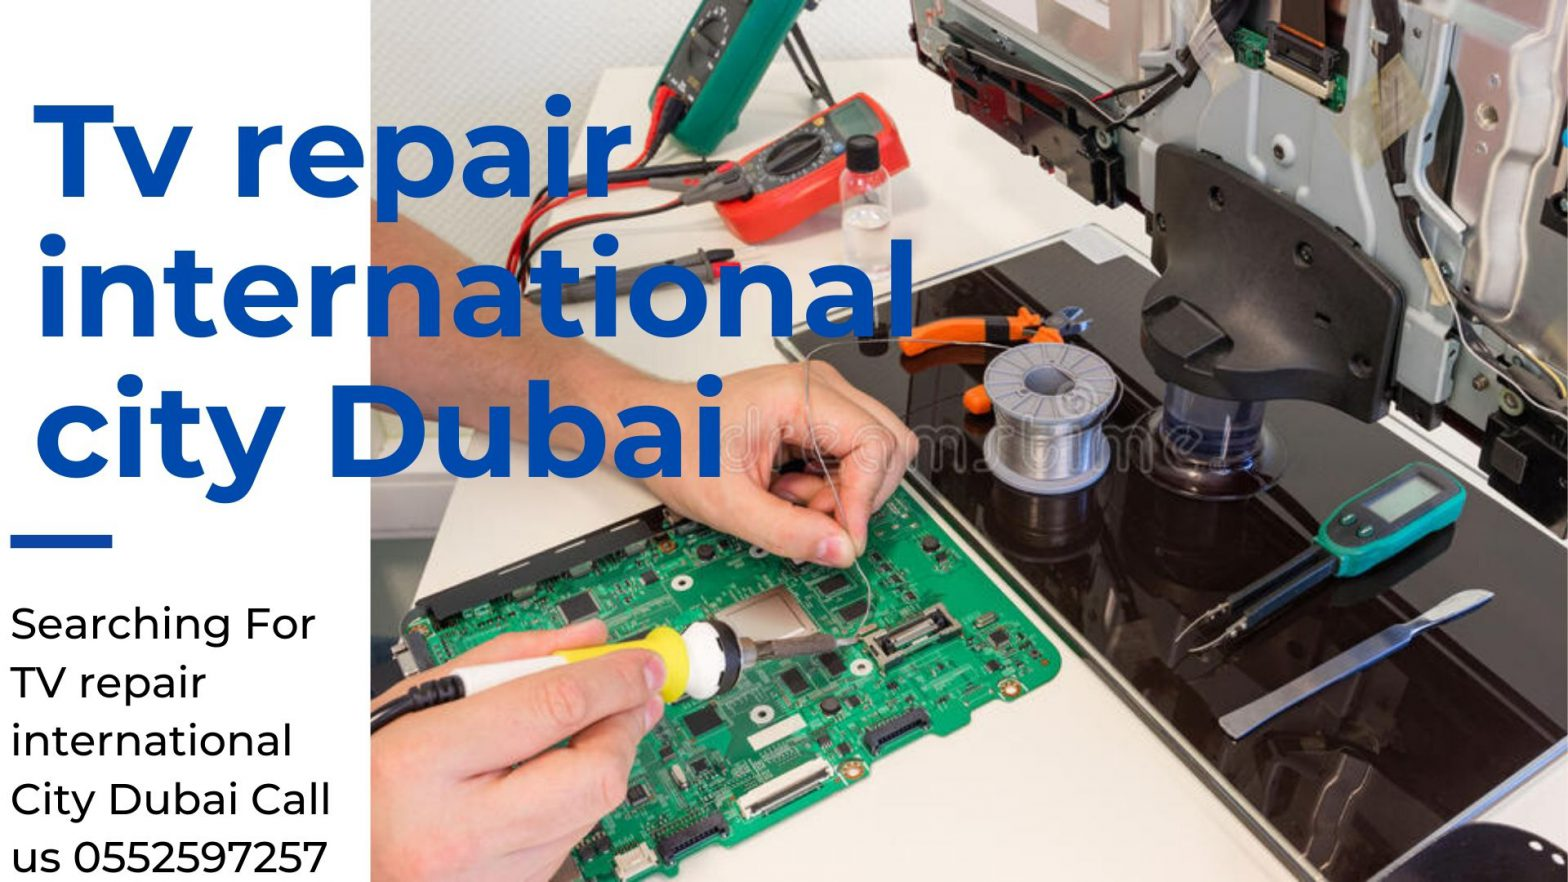 TV repair international City Dubai